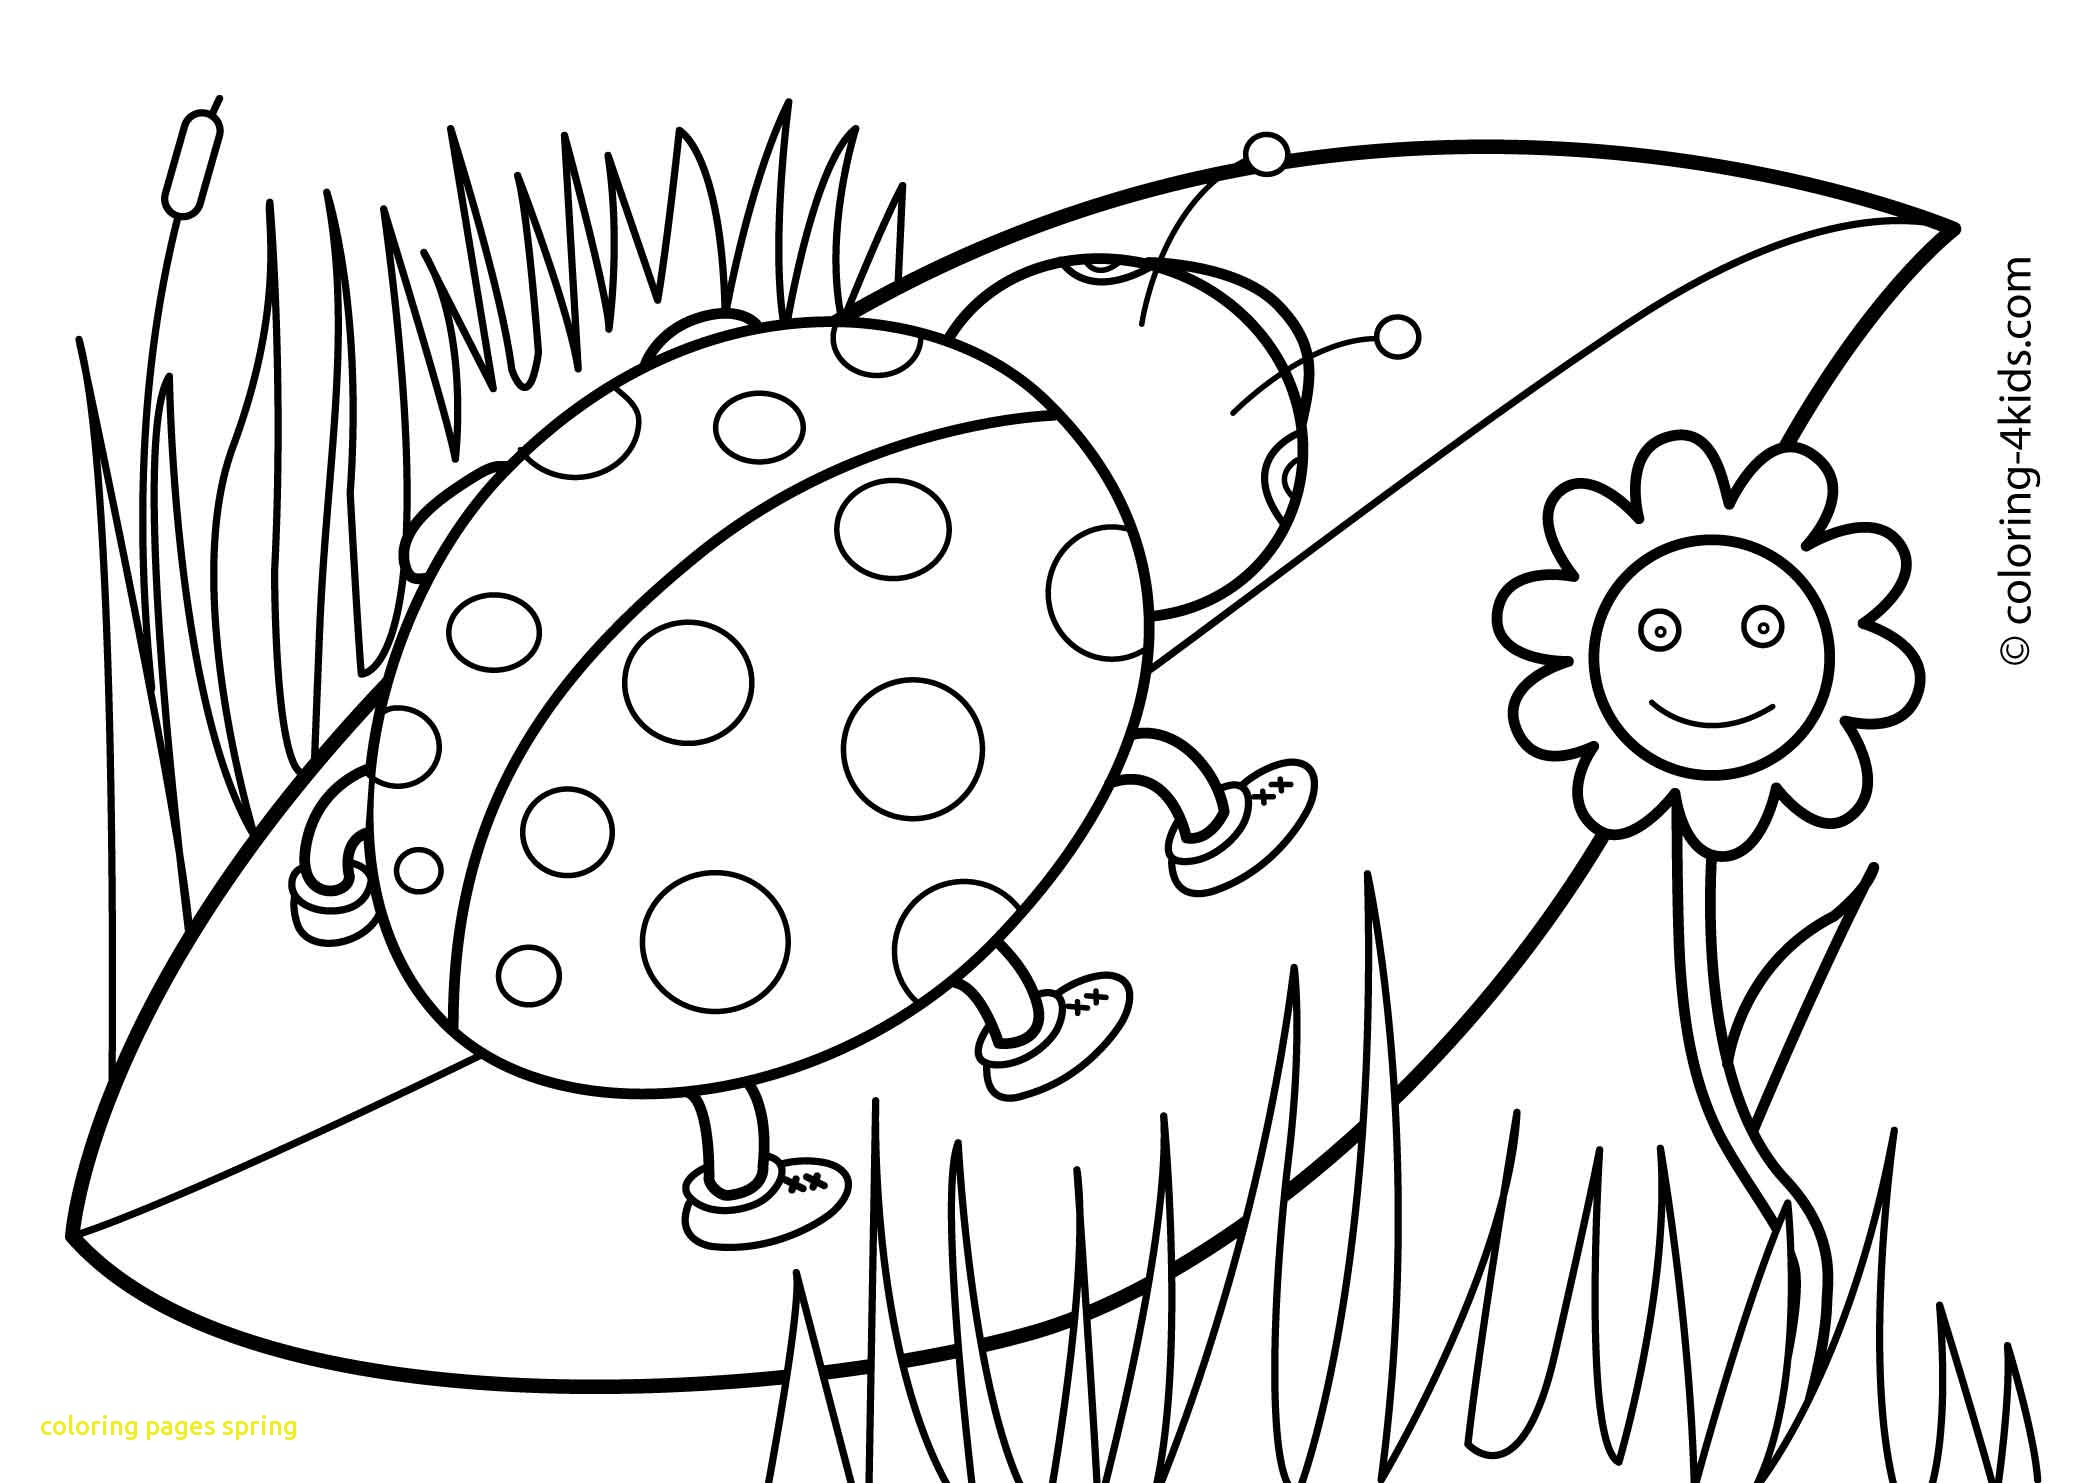 2079x1483 Fresh Coloring Pages Spring With Free Printable Spring Coloring